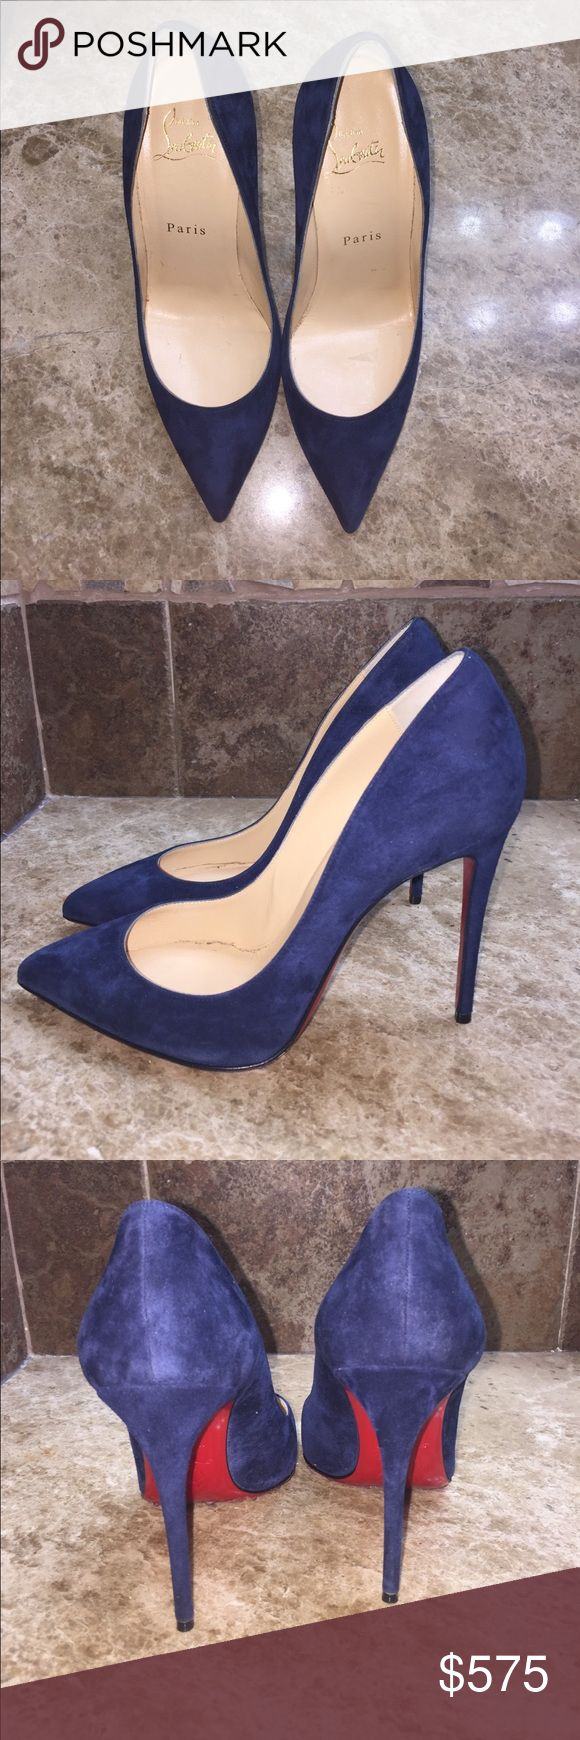 Christian Louboutin Pigalle Follies 100 Navy Blue Christian Louboutin Pigalle Follies 100 Navy Blue suede worn once protect your Pumps clear adhesive applied (no box sold with the shoe bags) Christian Louboutin Shoes Heels